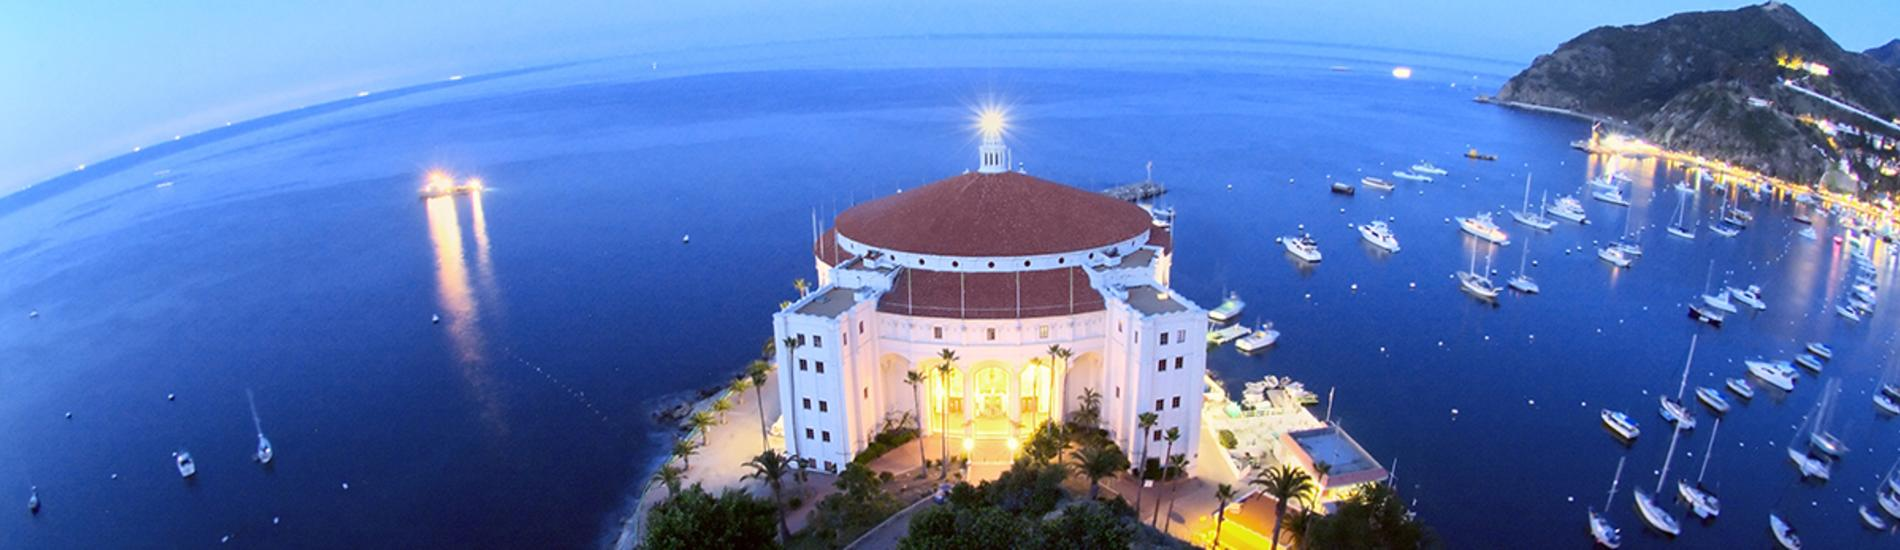 Aerial view of Catalina Casino at dusk on Catalina Island